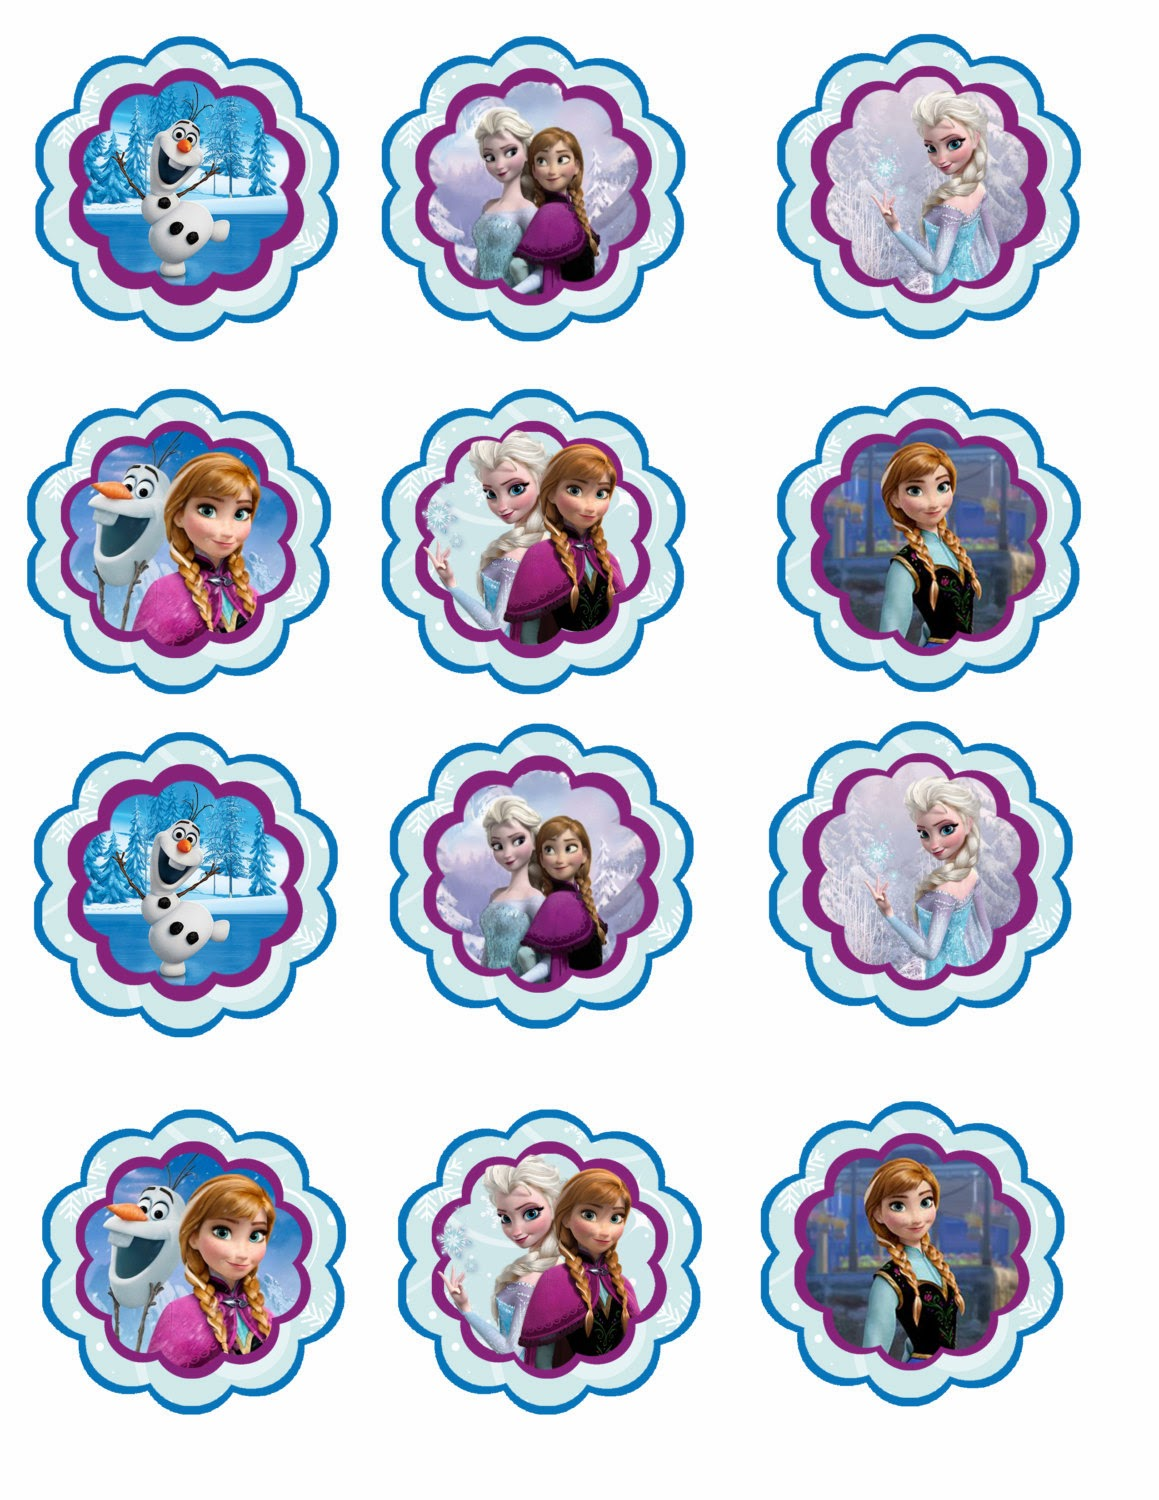 Gallery For gt Free Printable Frozen Cupcake Toppers